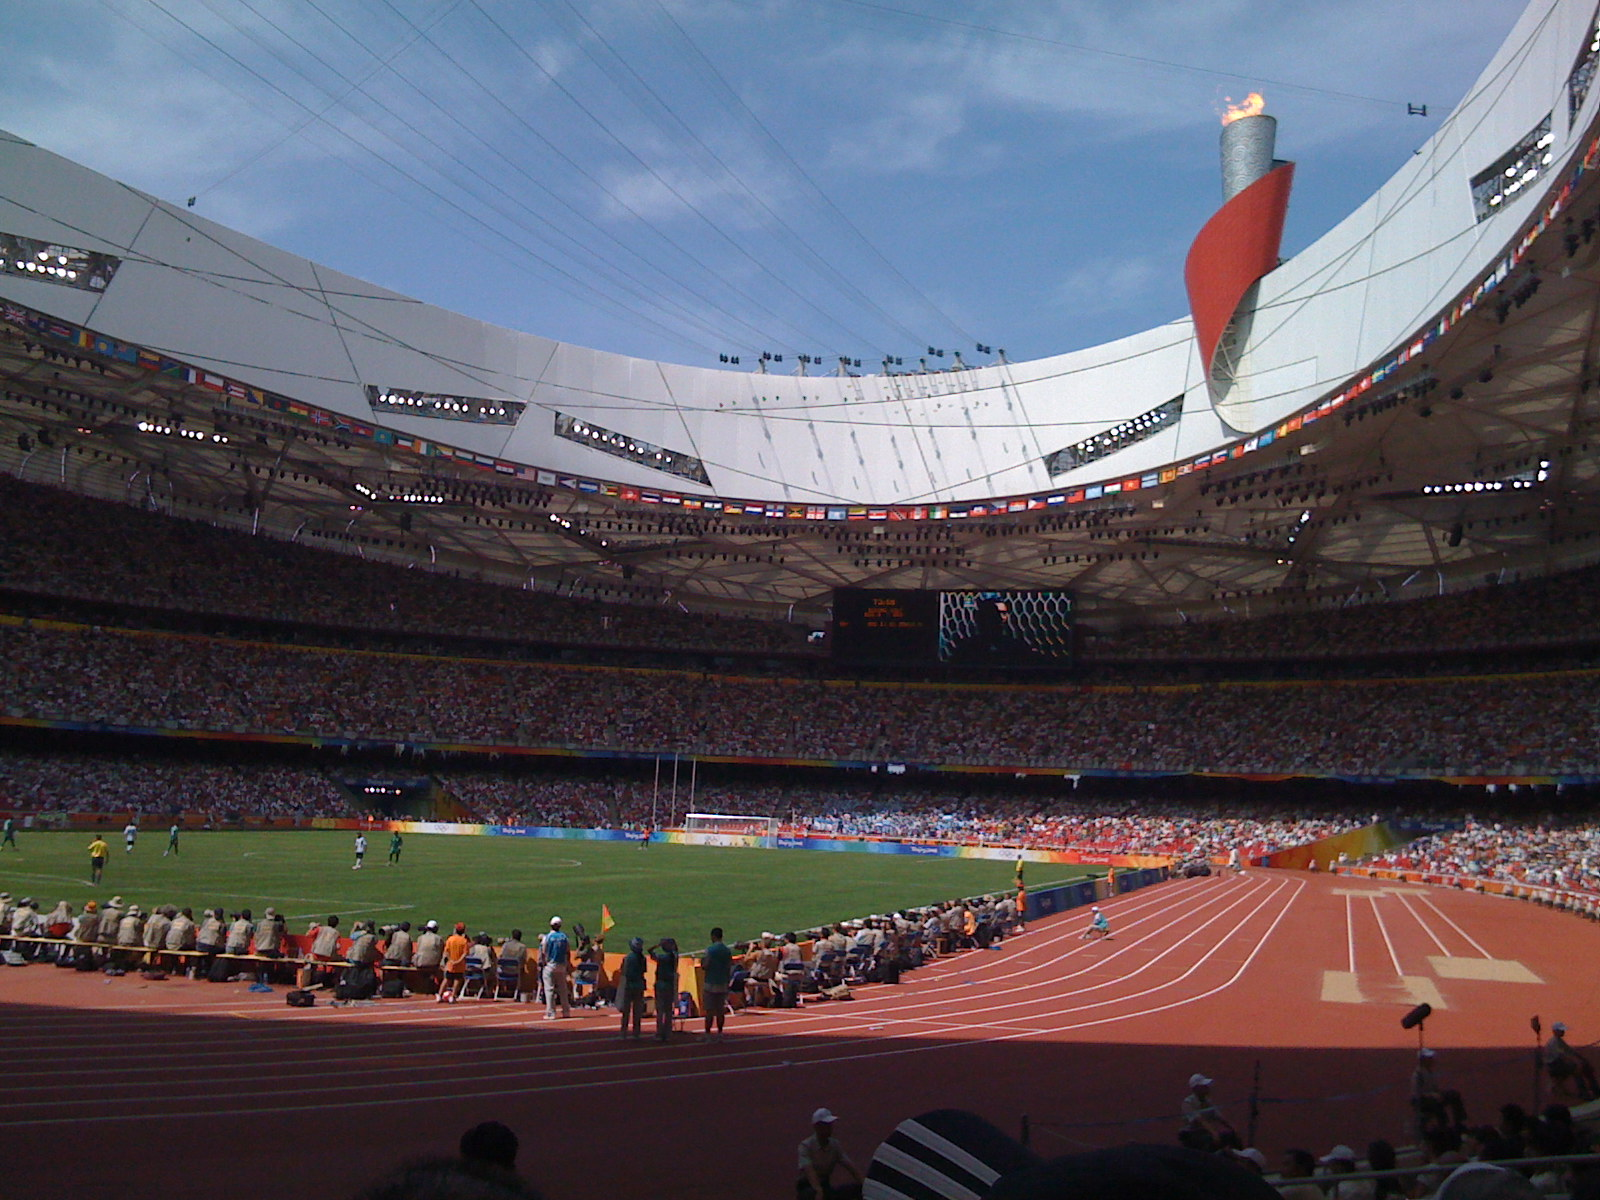 The stadium hosted the 2009 race of chions on 1 november 2010 the